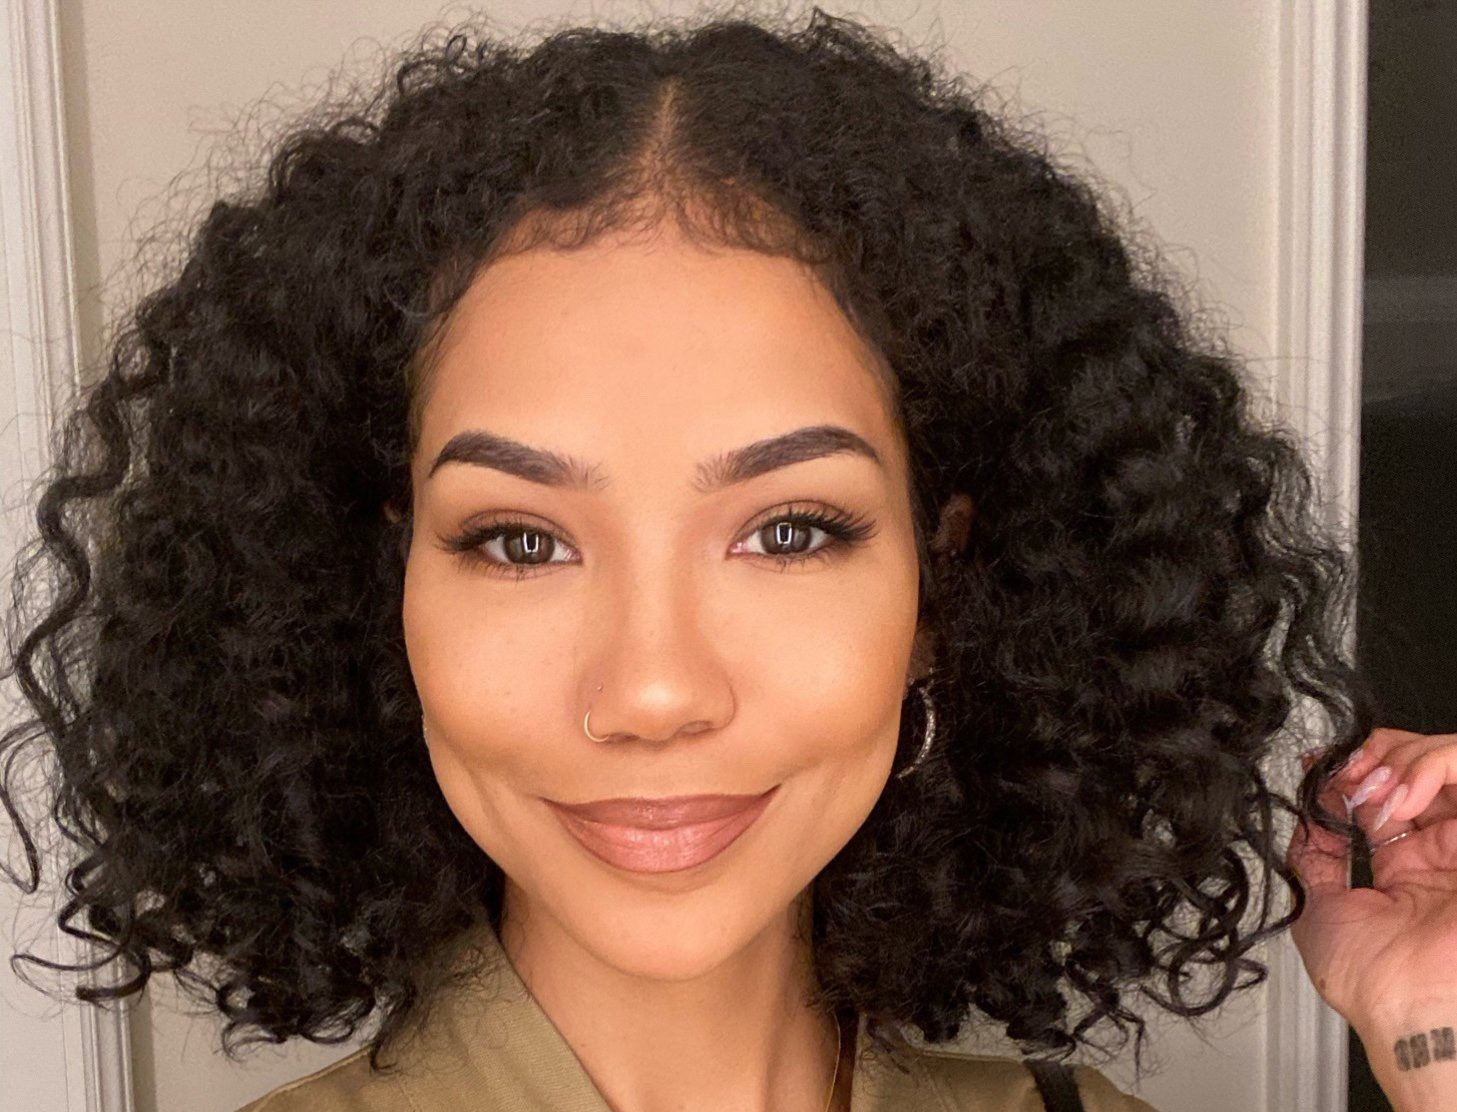 R&B Singer Jhene Aiko Reveals She Stopped Using the N-Word Following Backlash Over Her Ancestry DNA Results